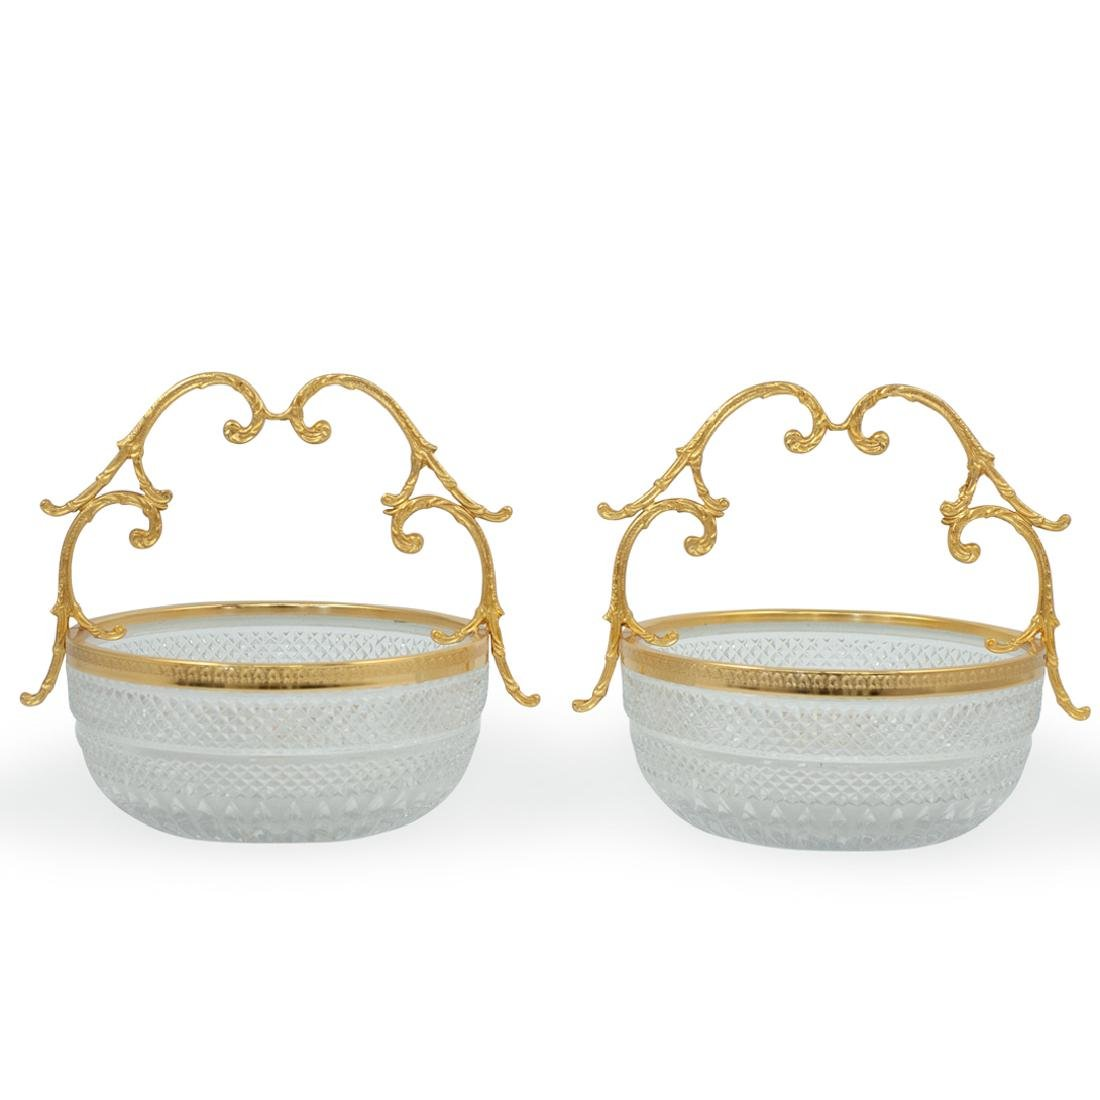 (2 Pc) Cut Crystal and Gilt Handle Bowls